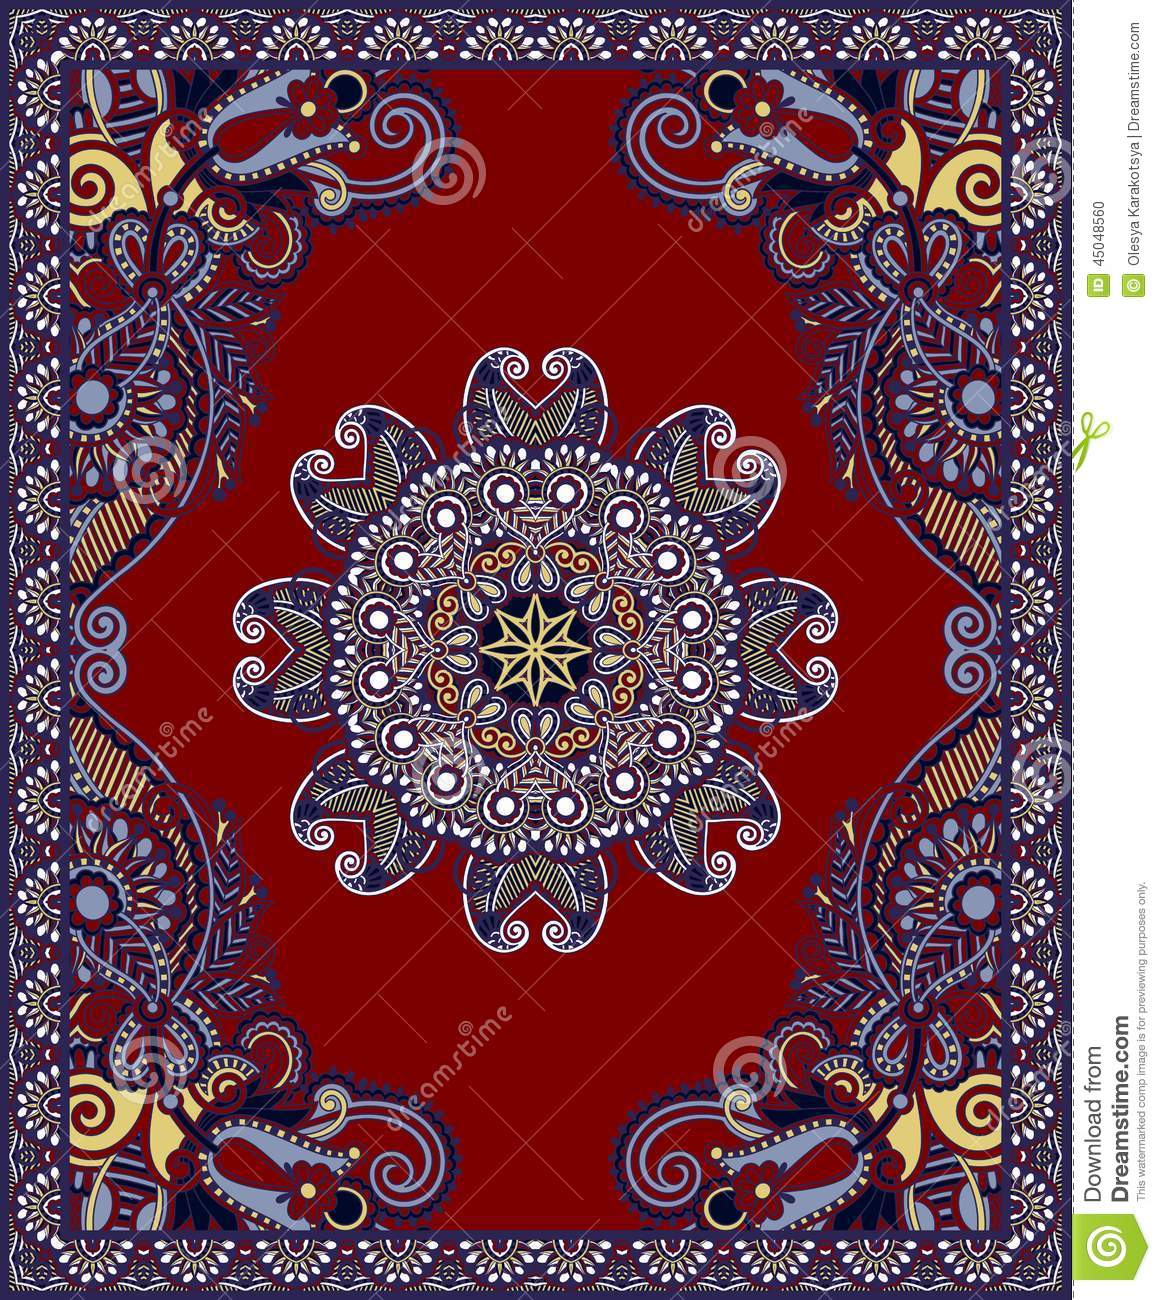 Ukrainian Oriental Floral Ornamental Carpet Design Stock